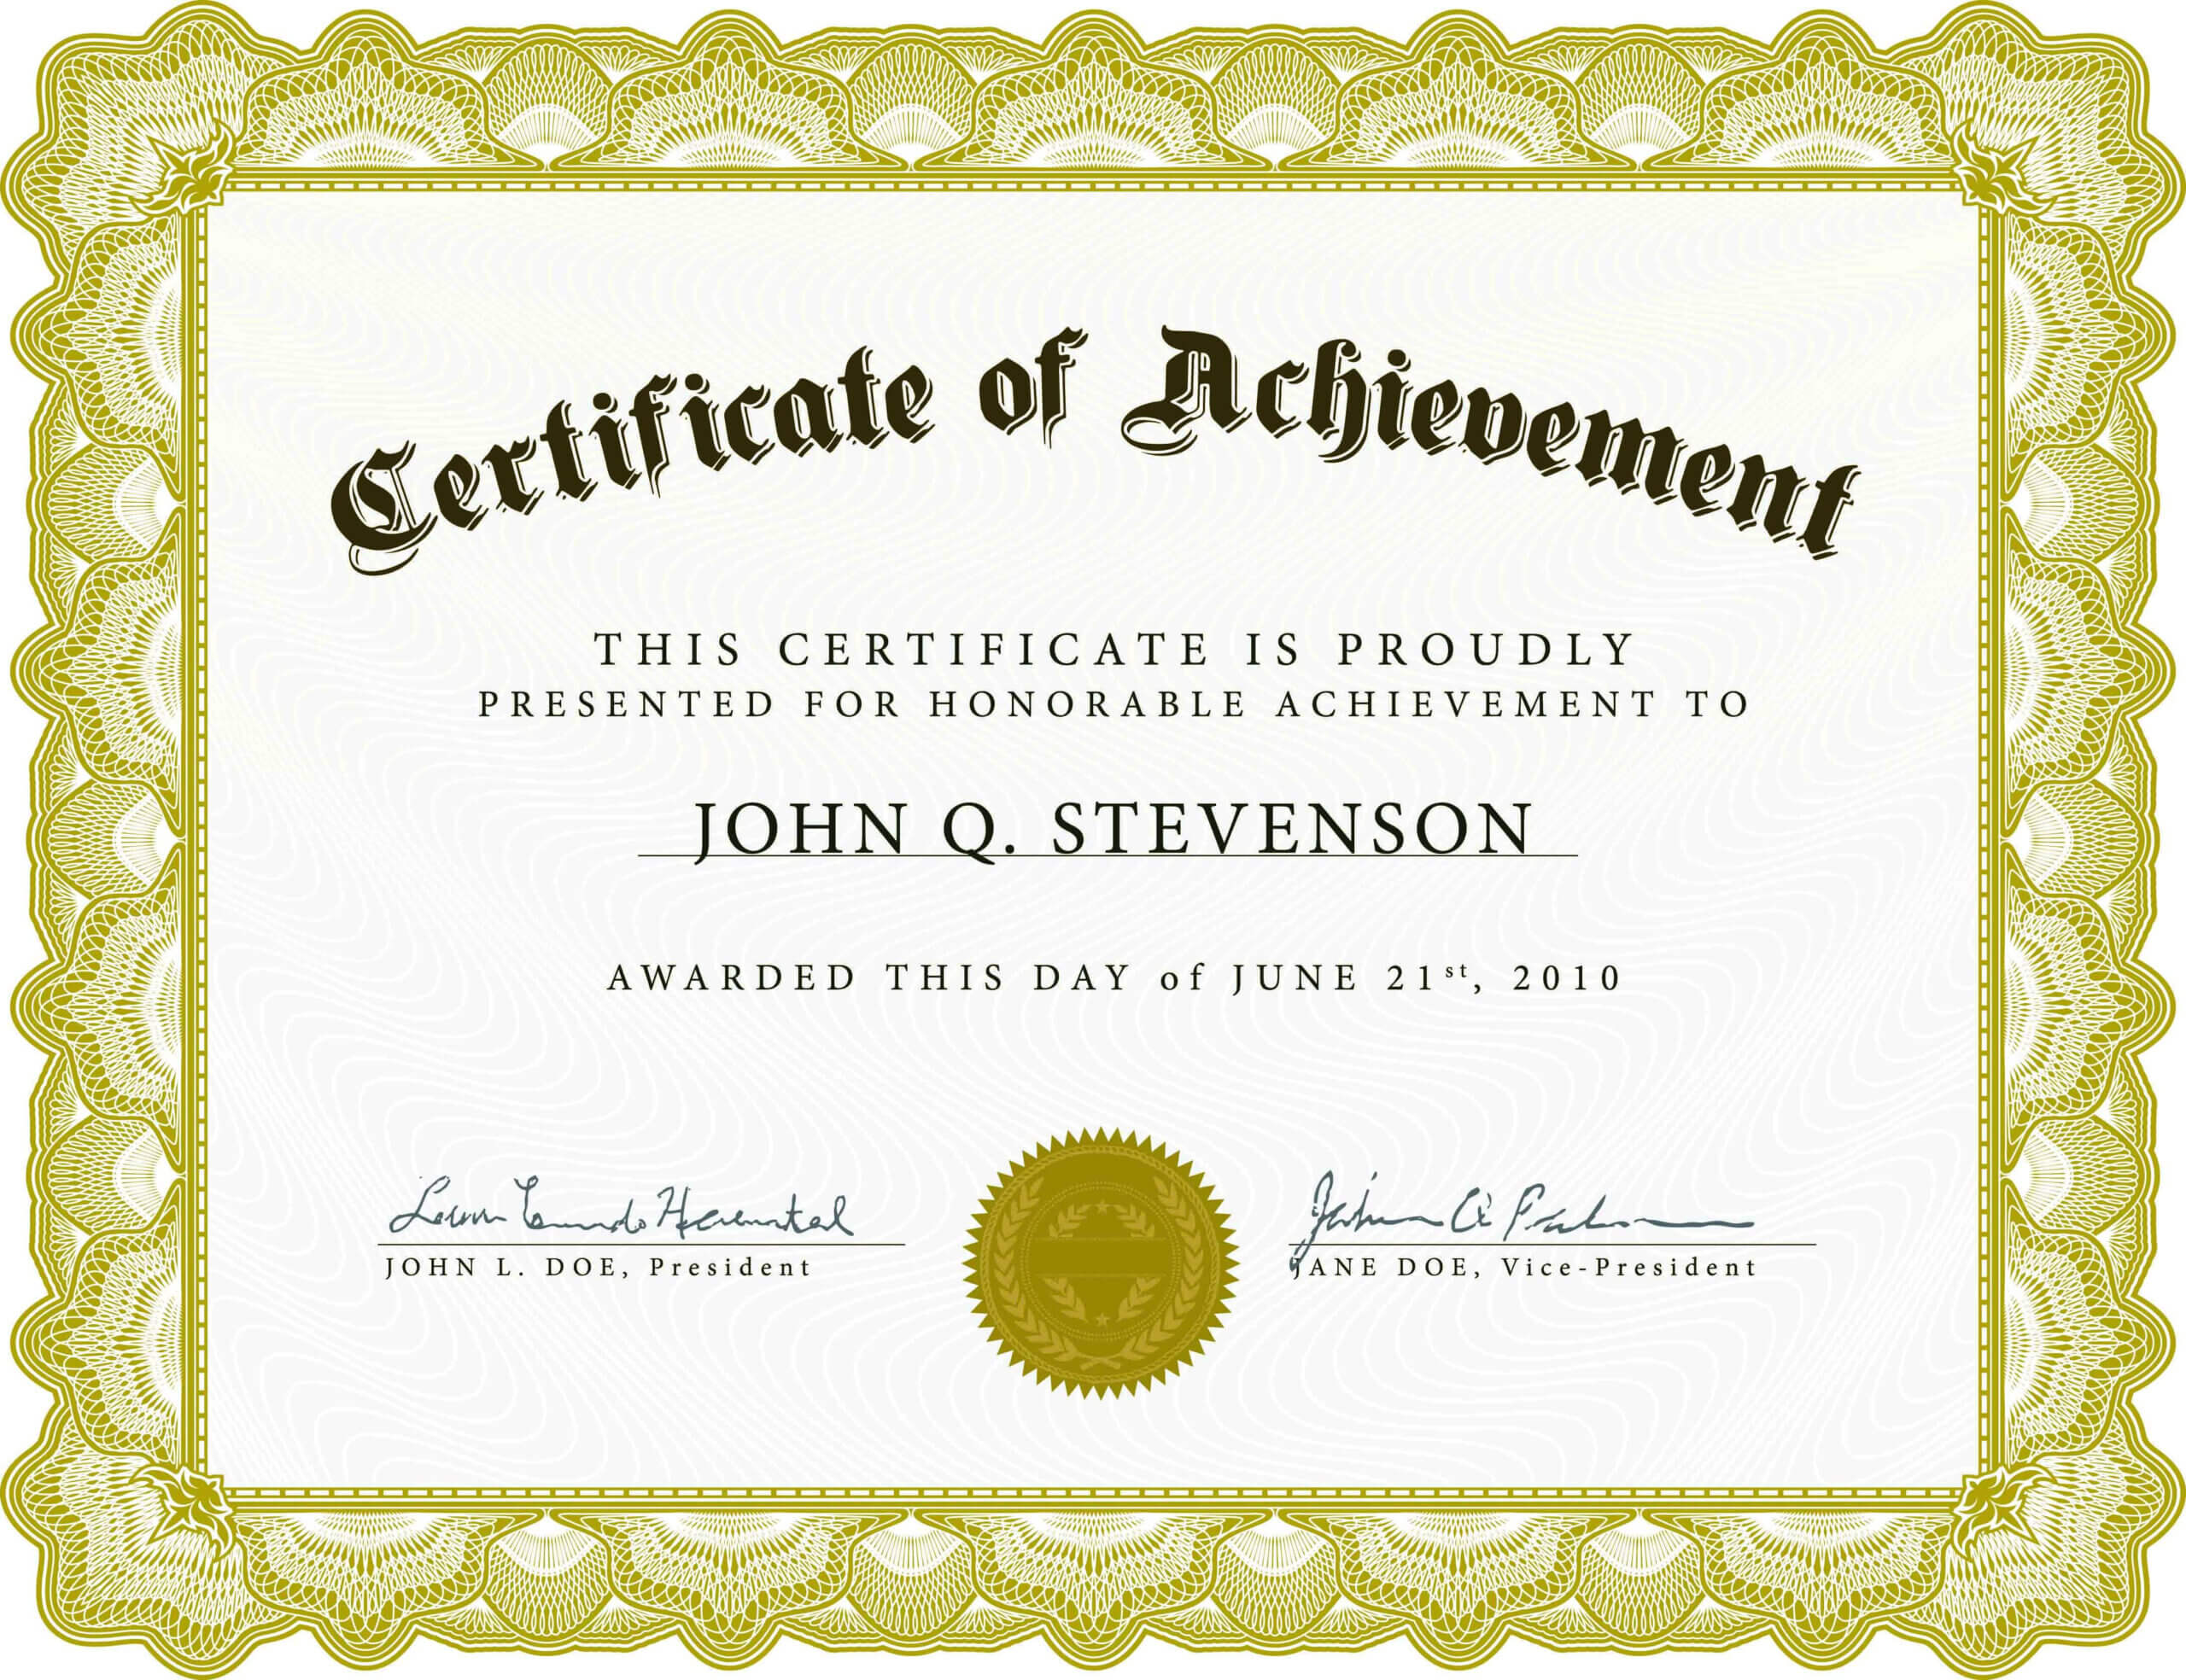 Employee Of The Month Certificate Sample – Calep.midnightpig.co Intended For Manager Of The Month Certificate Template